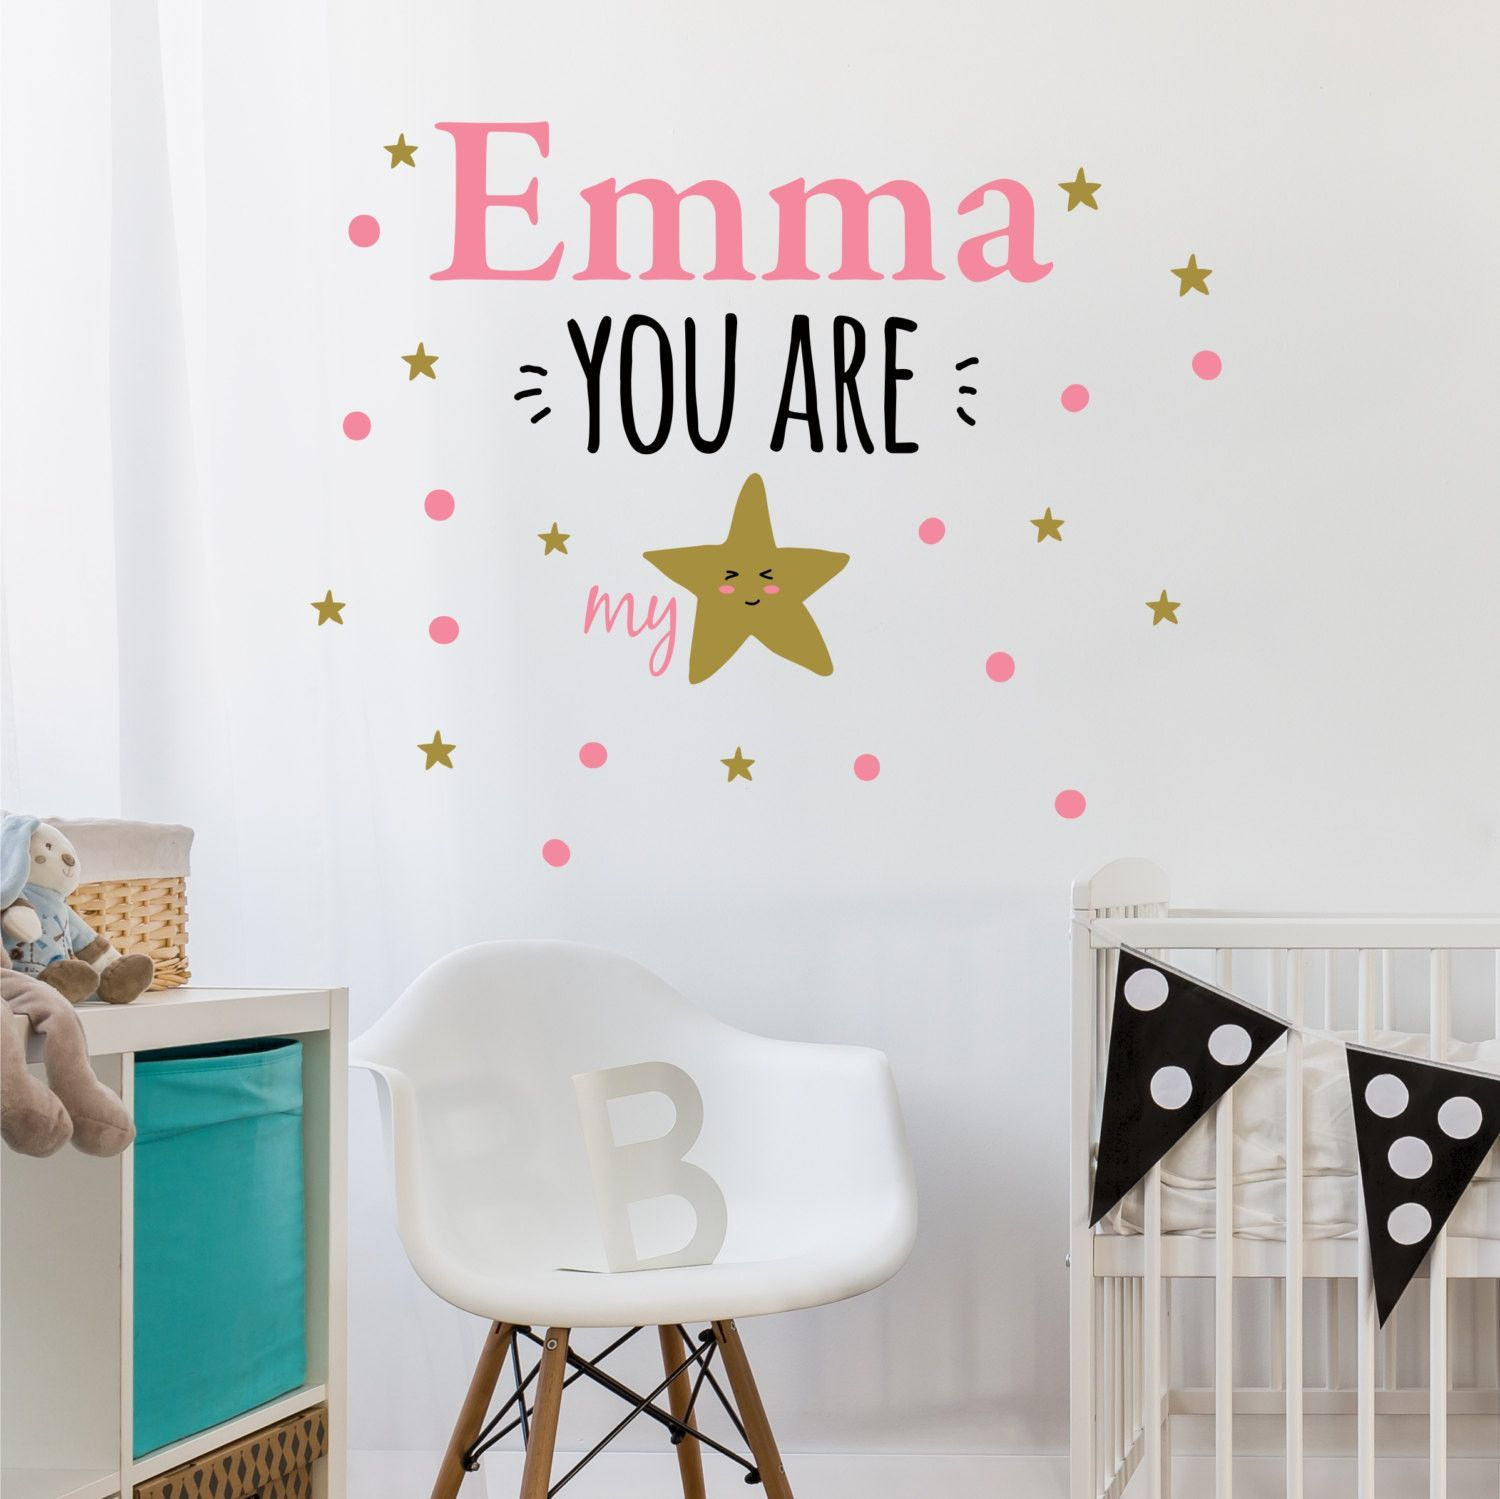 You Are My Star Personalized Custom Vinyl Wall Decal Sticker - Large custom vinyl wall decals